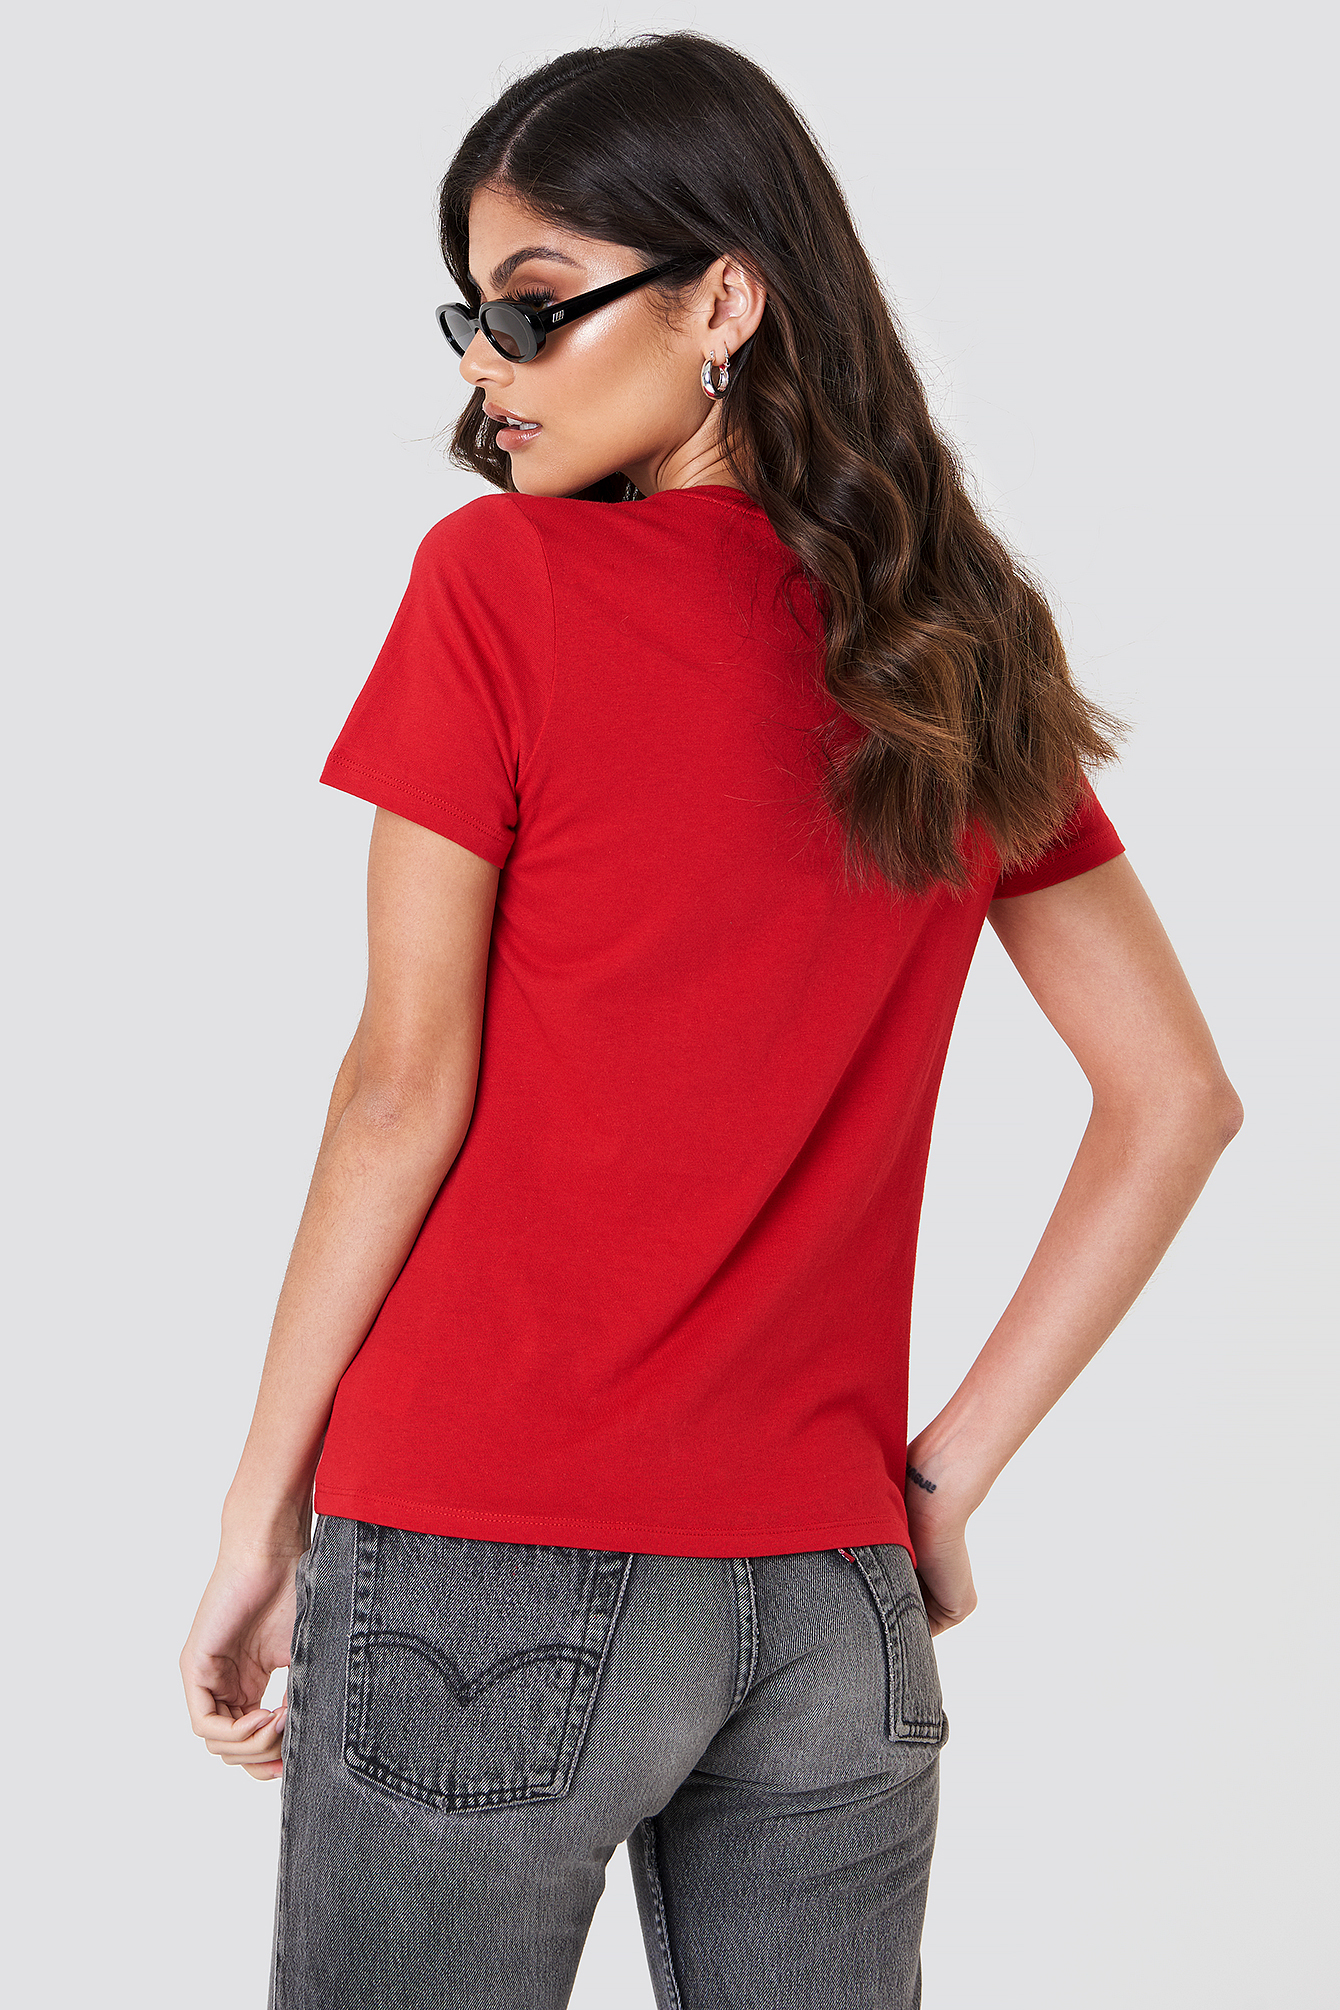 Red Self Ish tee